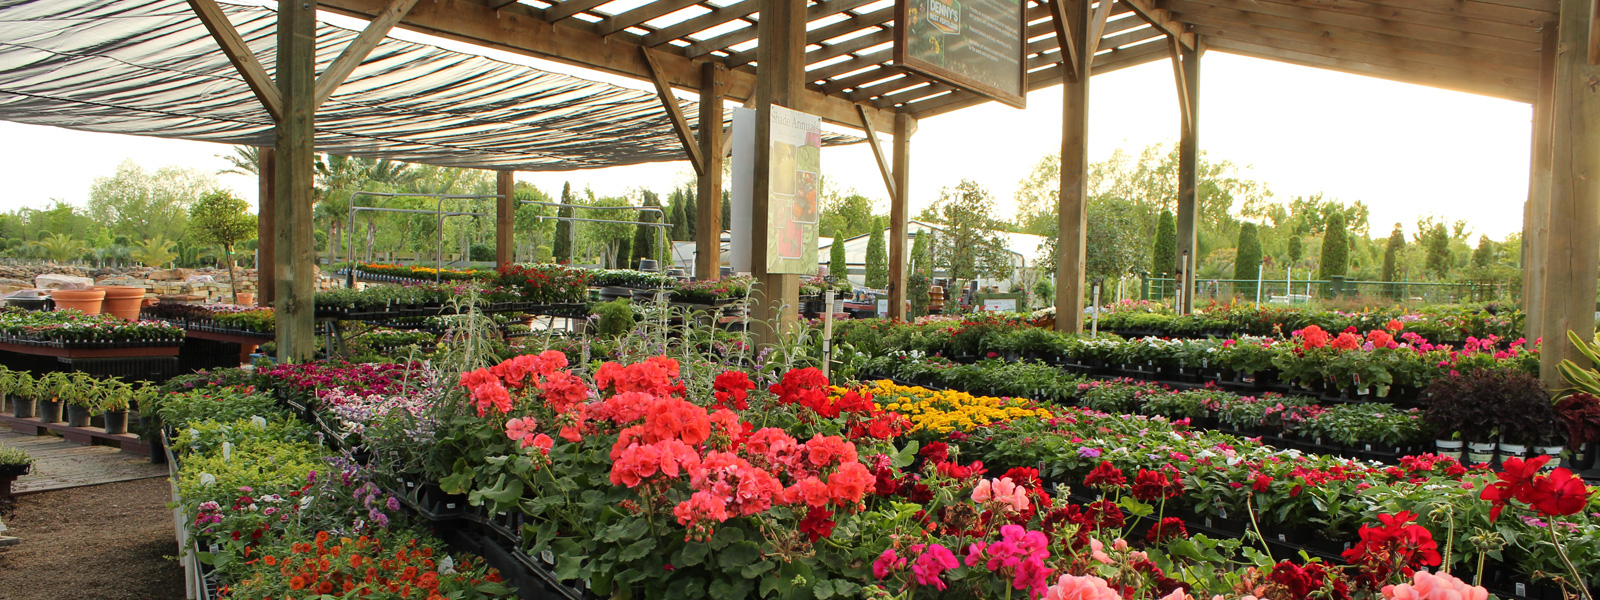 Retail Shades Of Texas Nursery Landscaping The Woodlands Magnolia Conroe